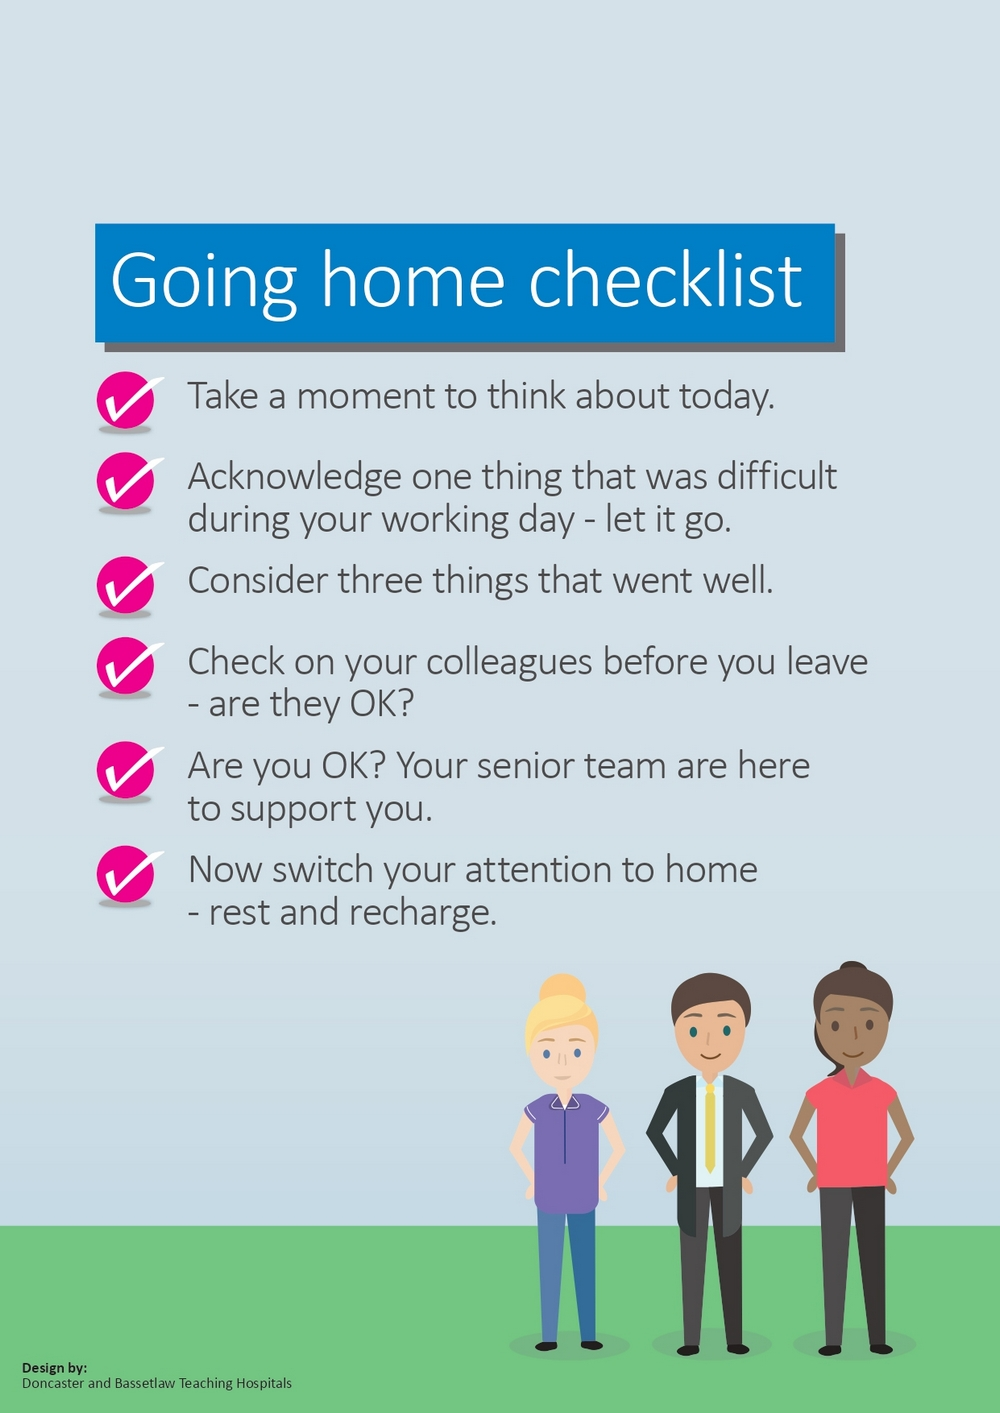 NHS UK Going Home CheckList